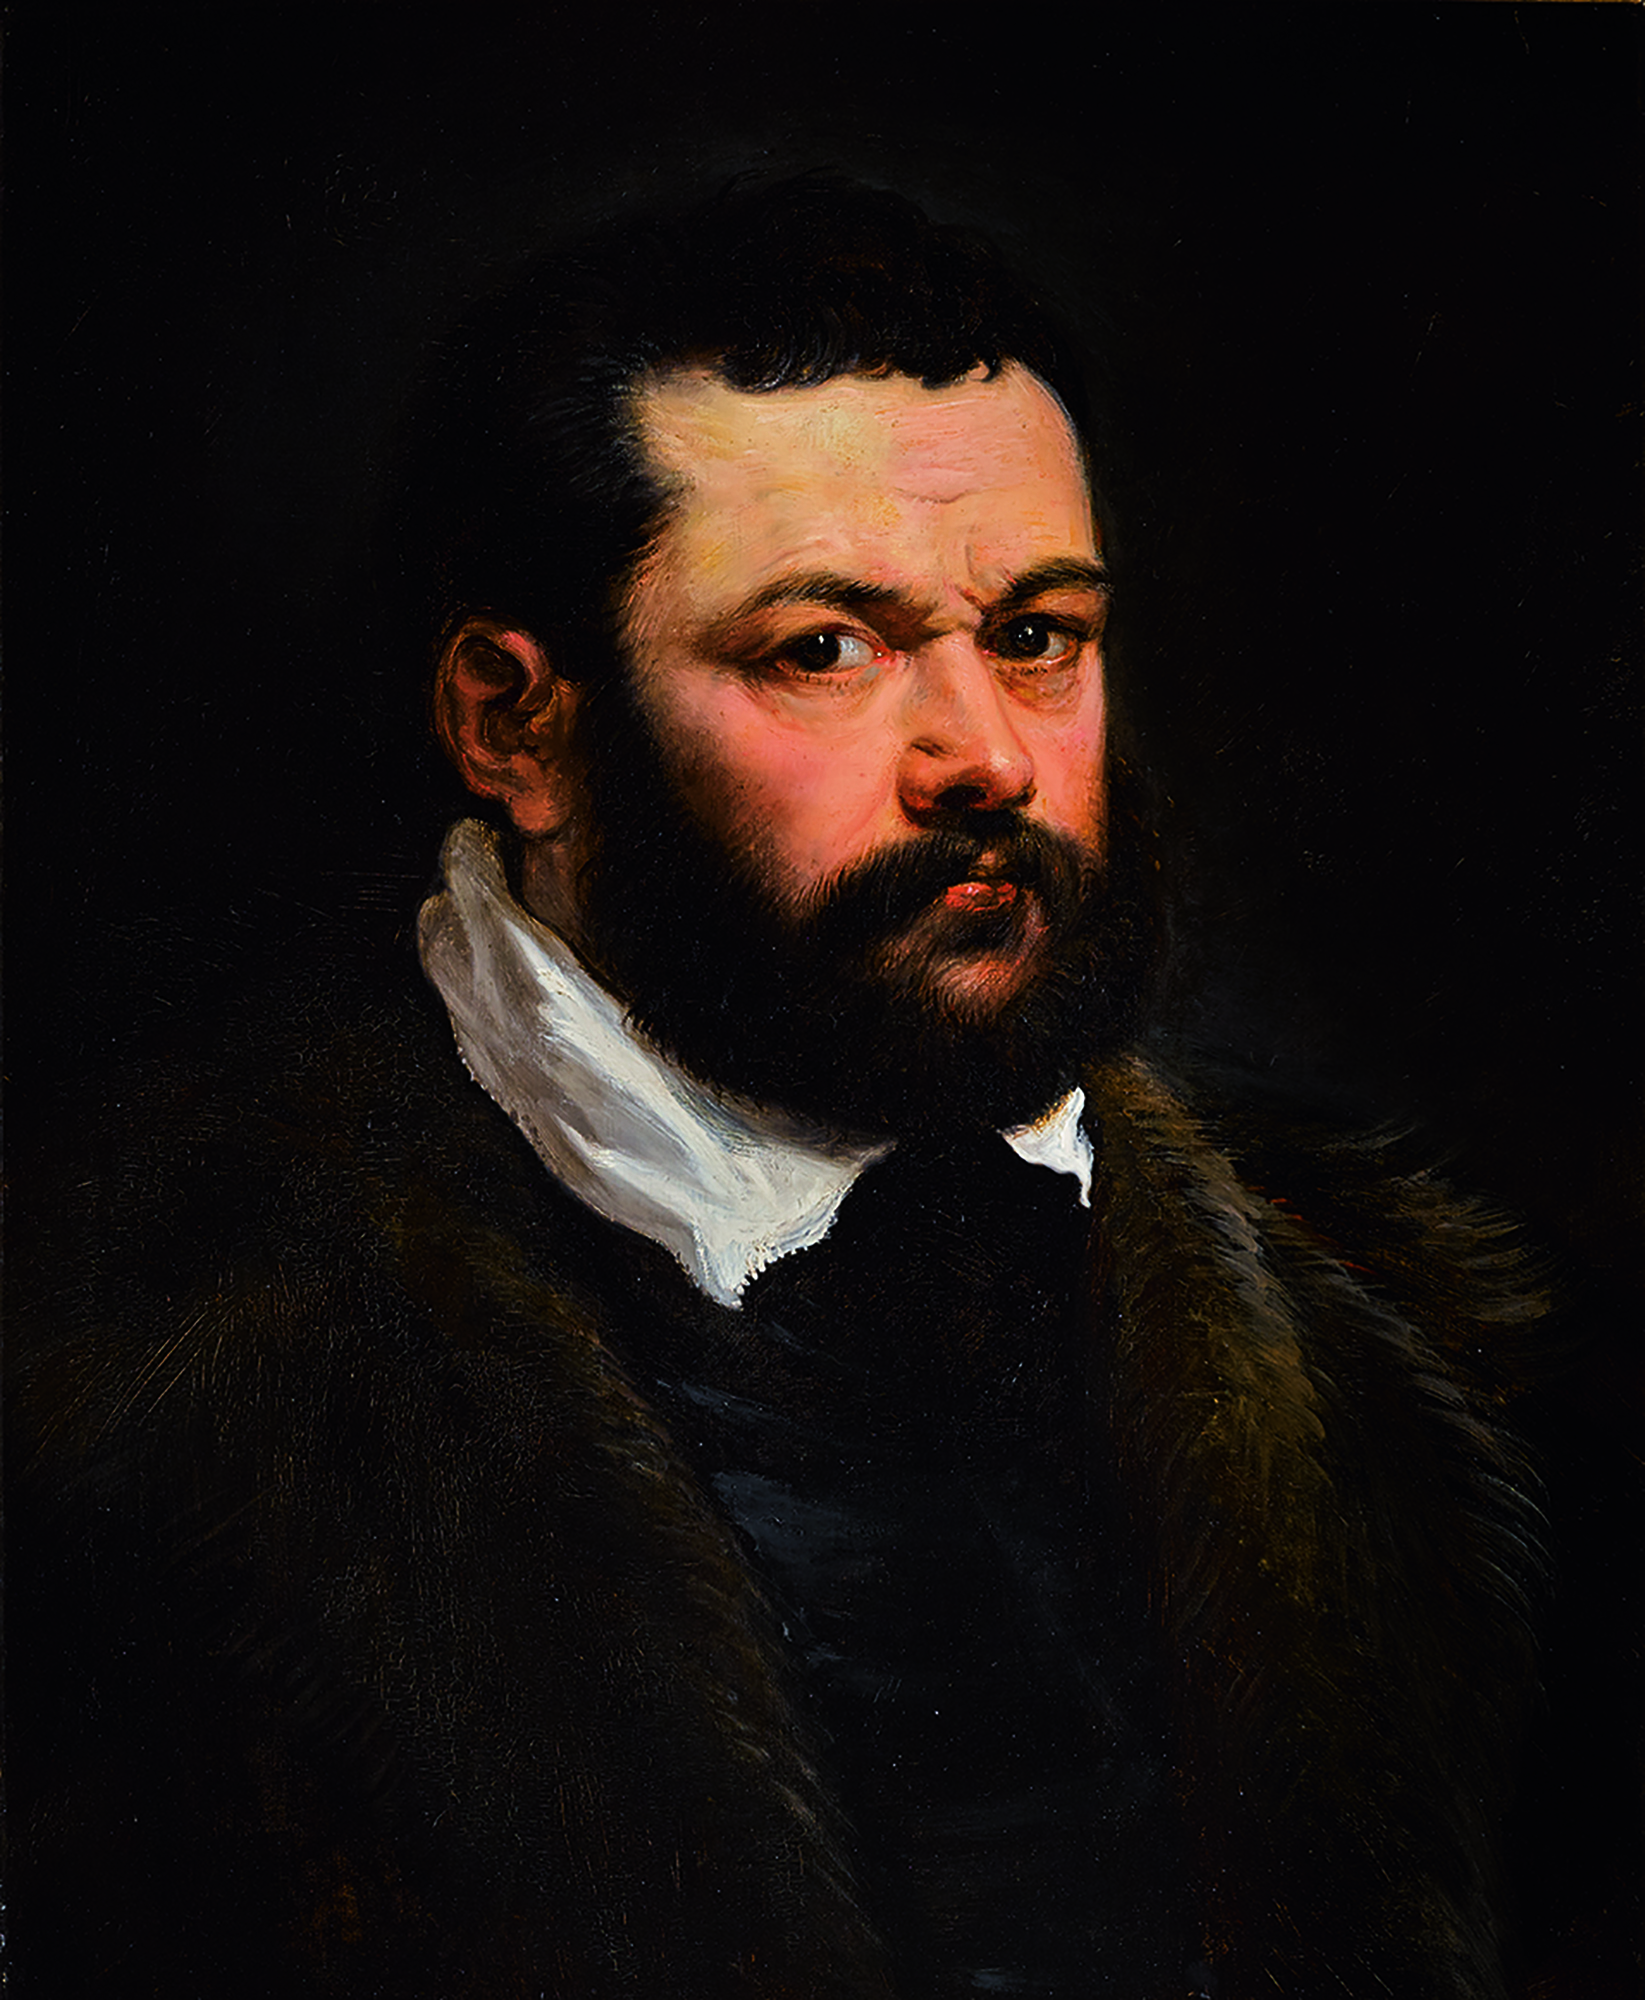 Portrait of a Venetian Nobleman, by Sir Peter Paul Rubens, will be on auction at Sotheby's during London Art Week